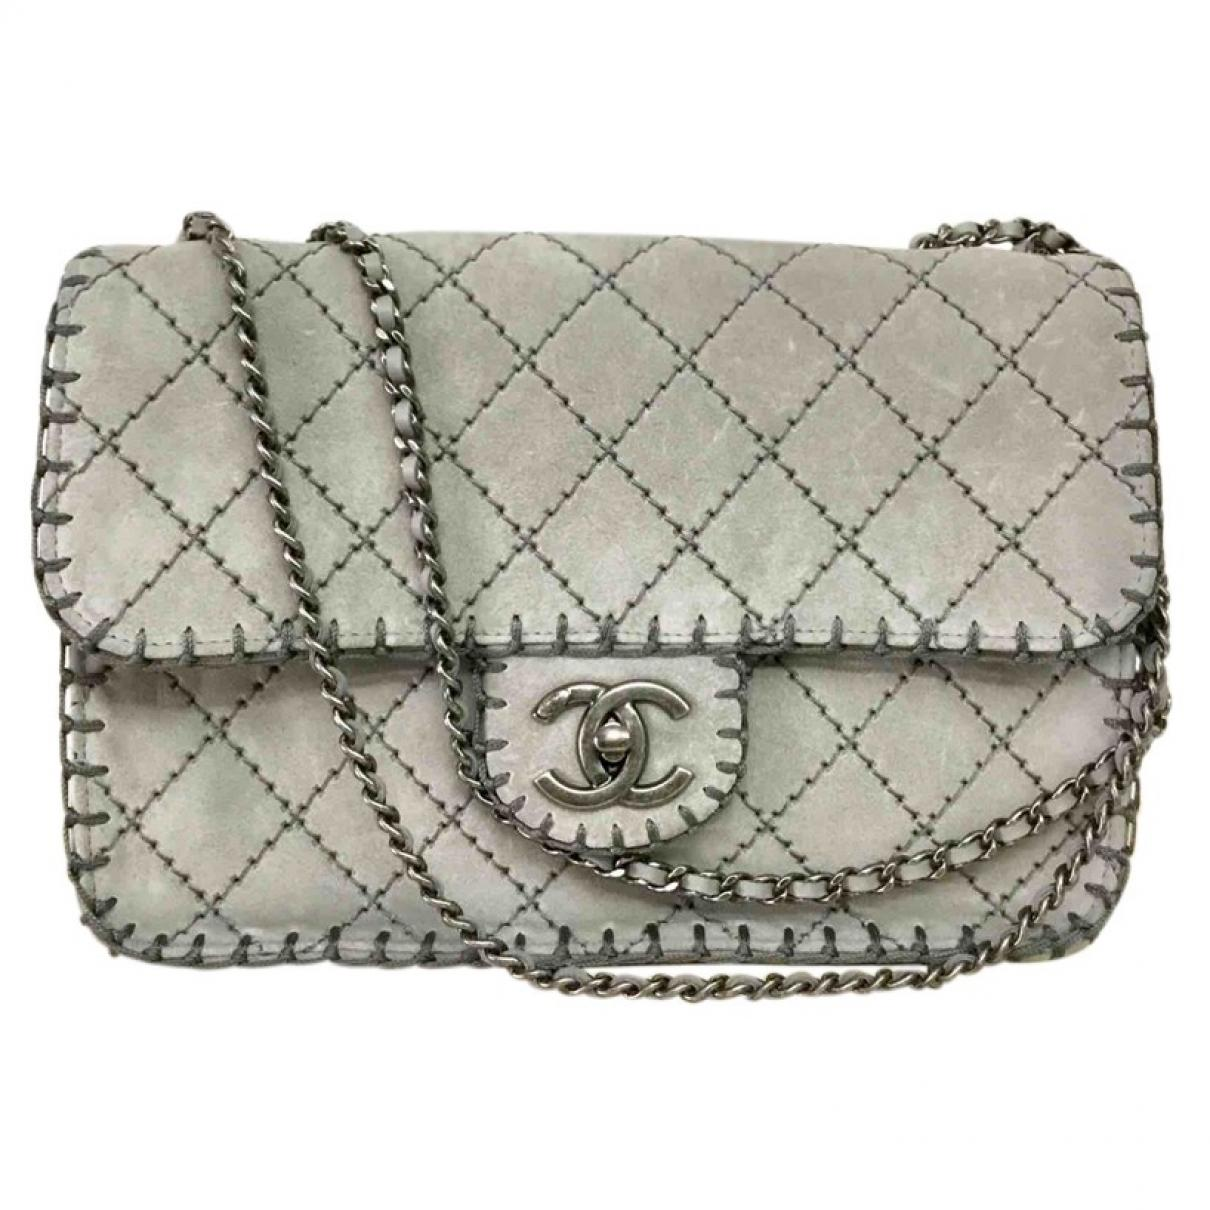 233c9a471063 Chanel. Women's Gray Timeless/classique Crossbody Bag. $2,831 From Vestiaire  Collective